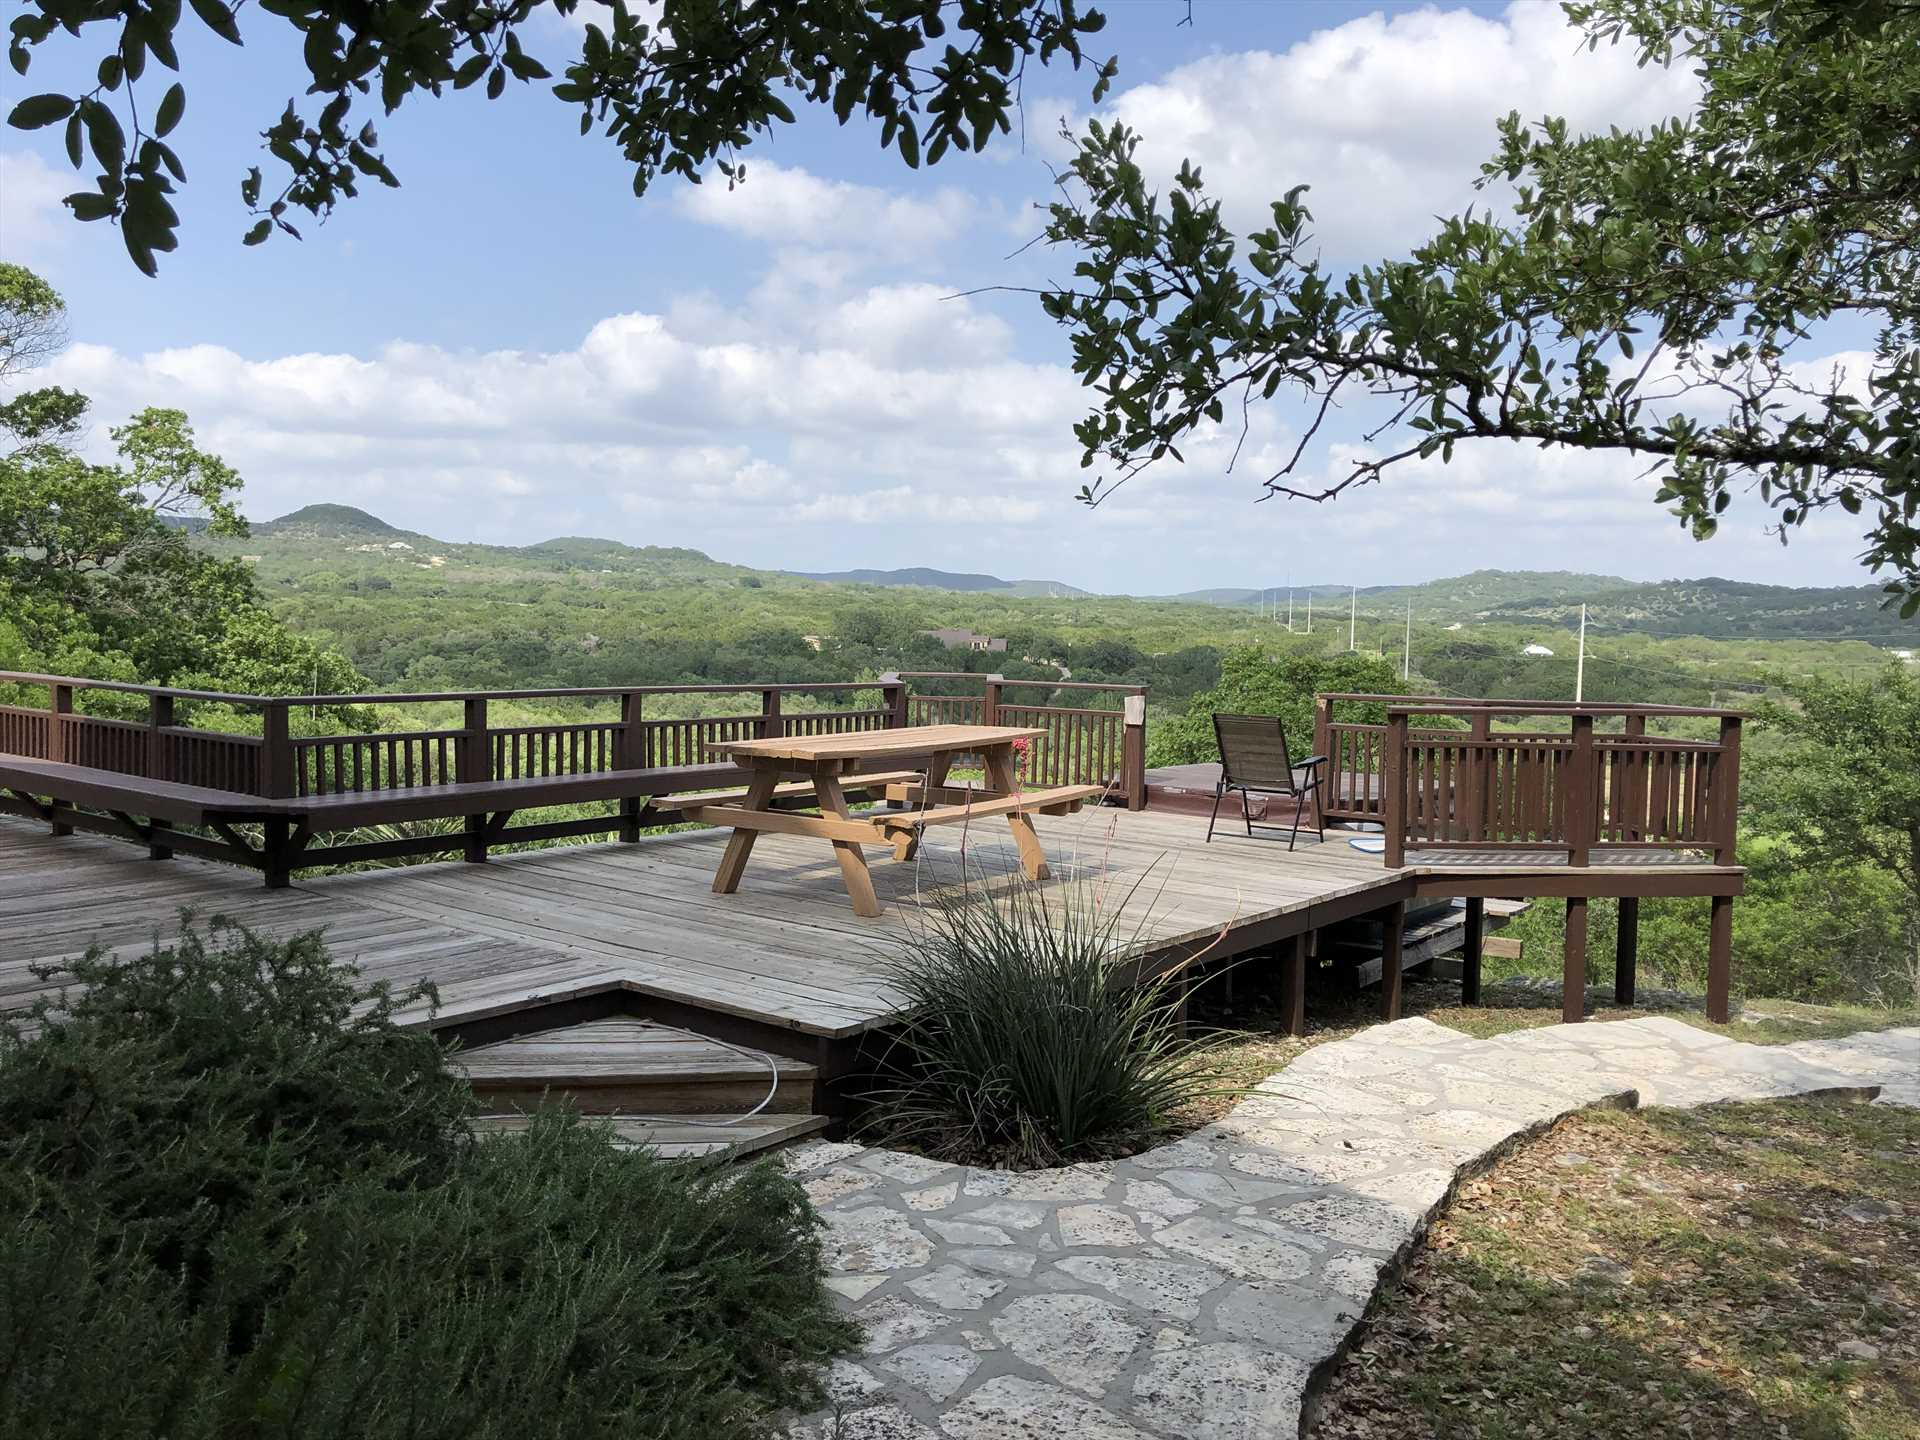 These are some of the most impressive bird's-eye views of the Hill Country. Have a soak in the hot tub and take it all in!